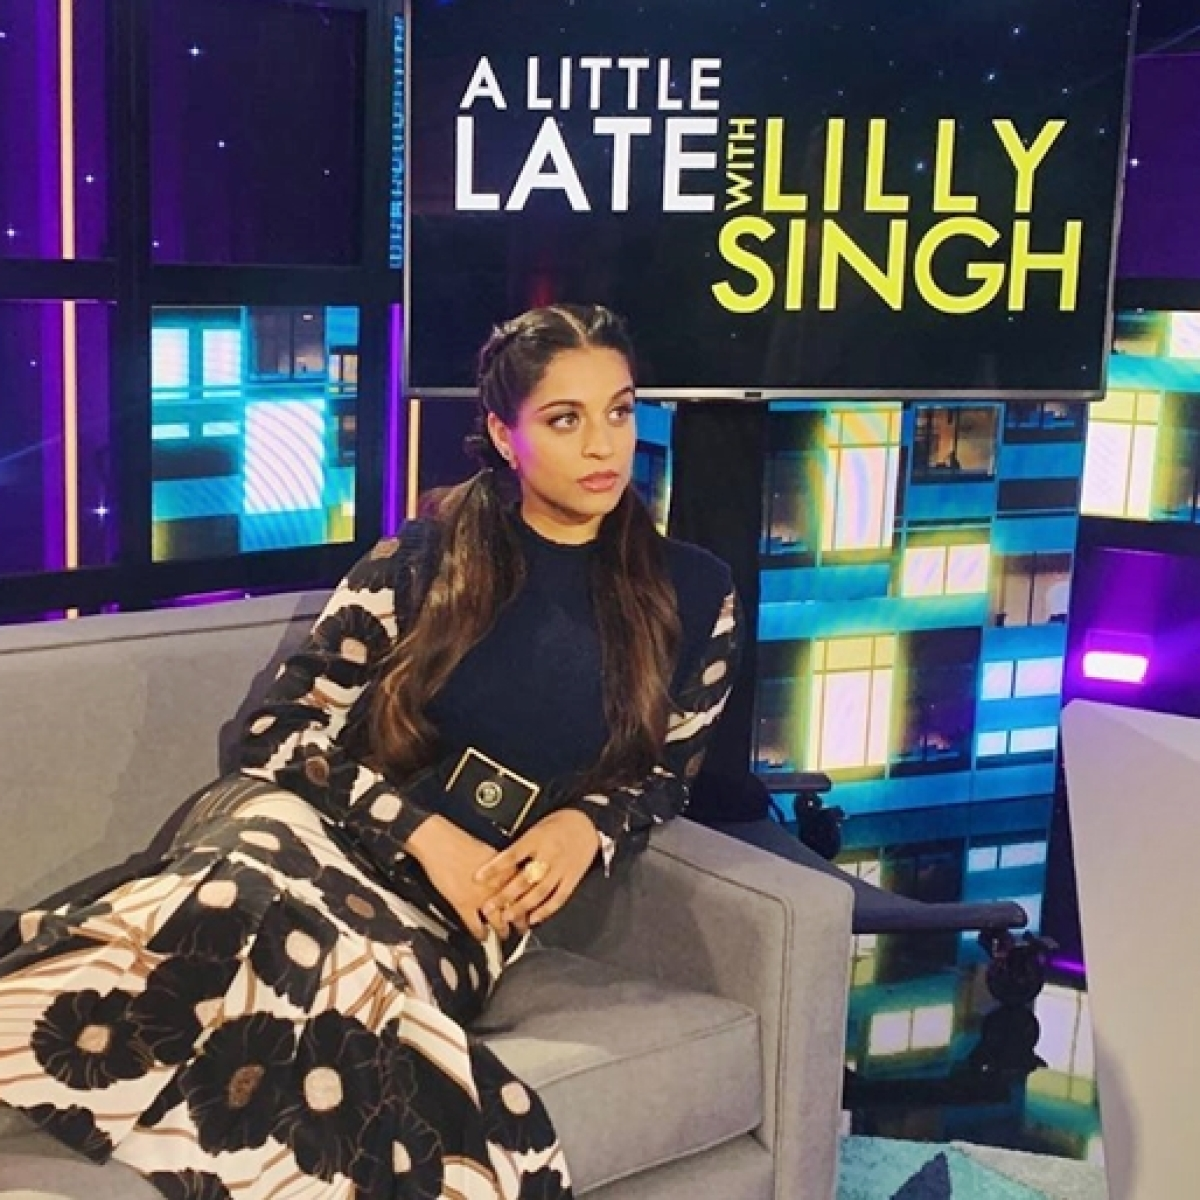 How to watch 'A Little Late with Lilly Singh' show in India?